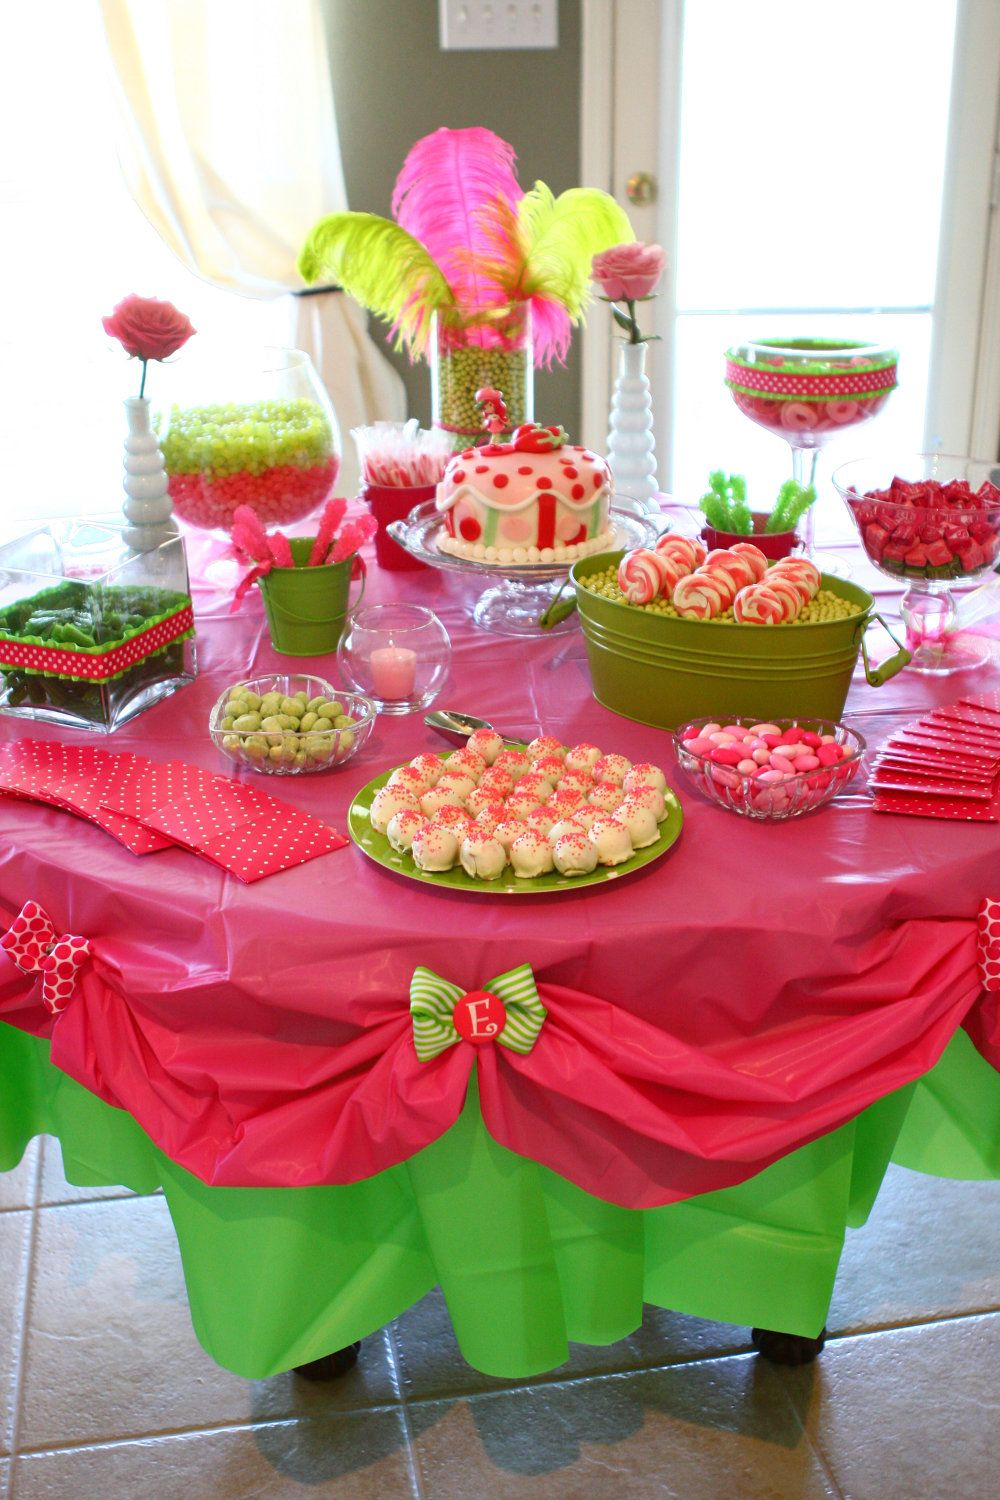 personalized table cloth pink and green birthday party candy rh pinterest com personalised table cloth uk personalised table cover uk